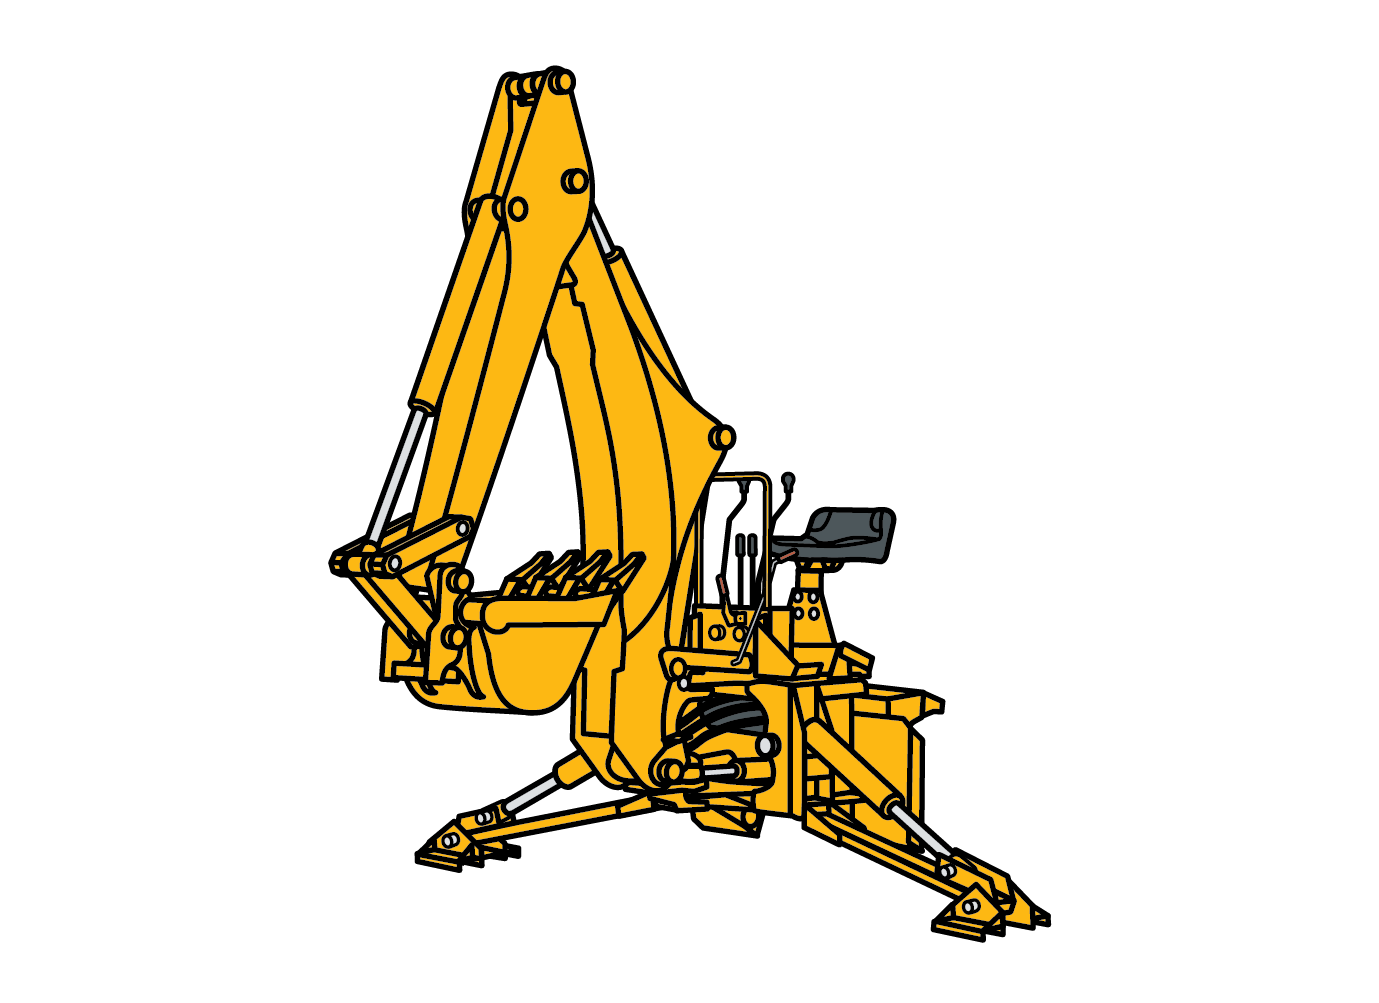 Backhoe illustration